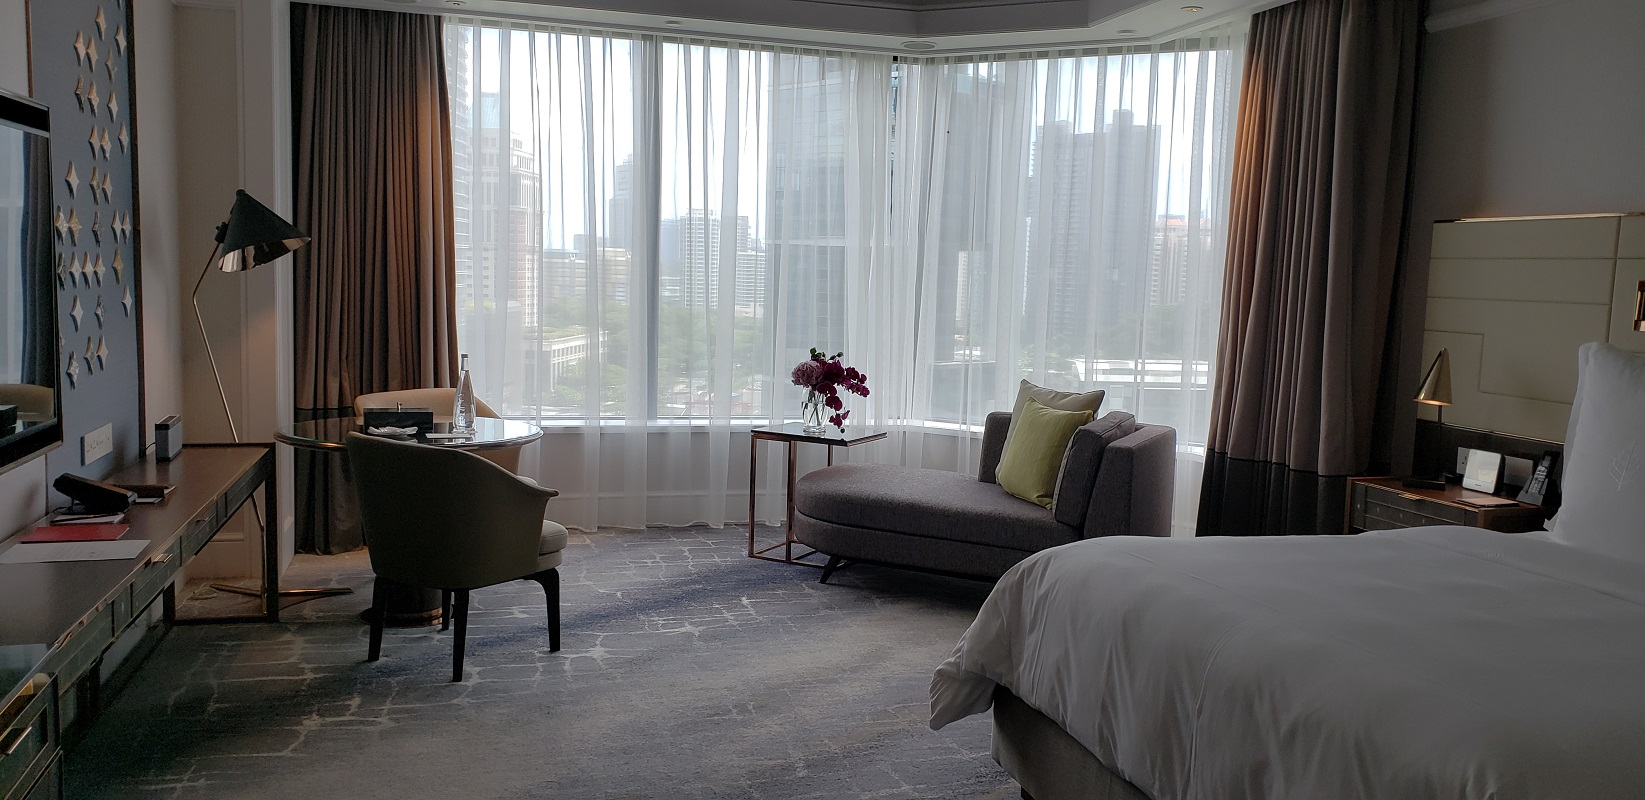 #1119 at the Four Seasons Singapore